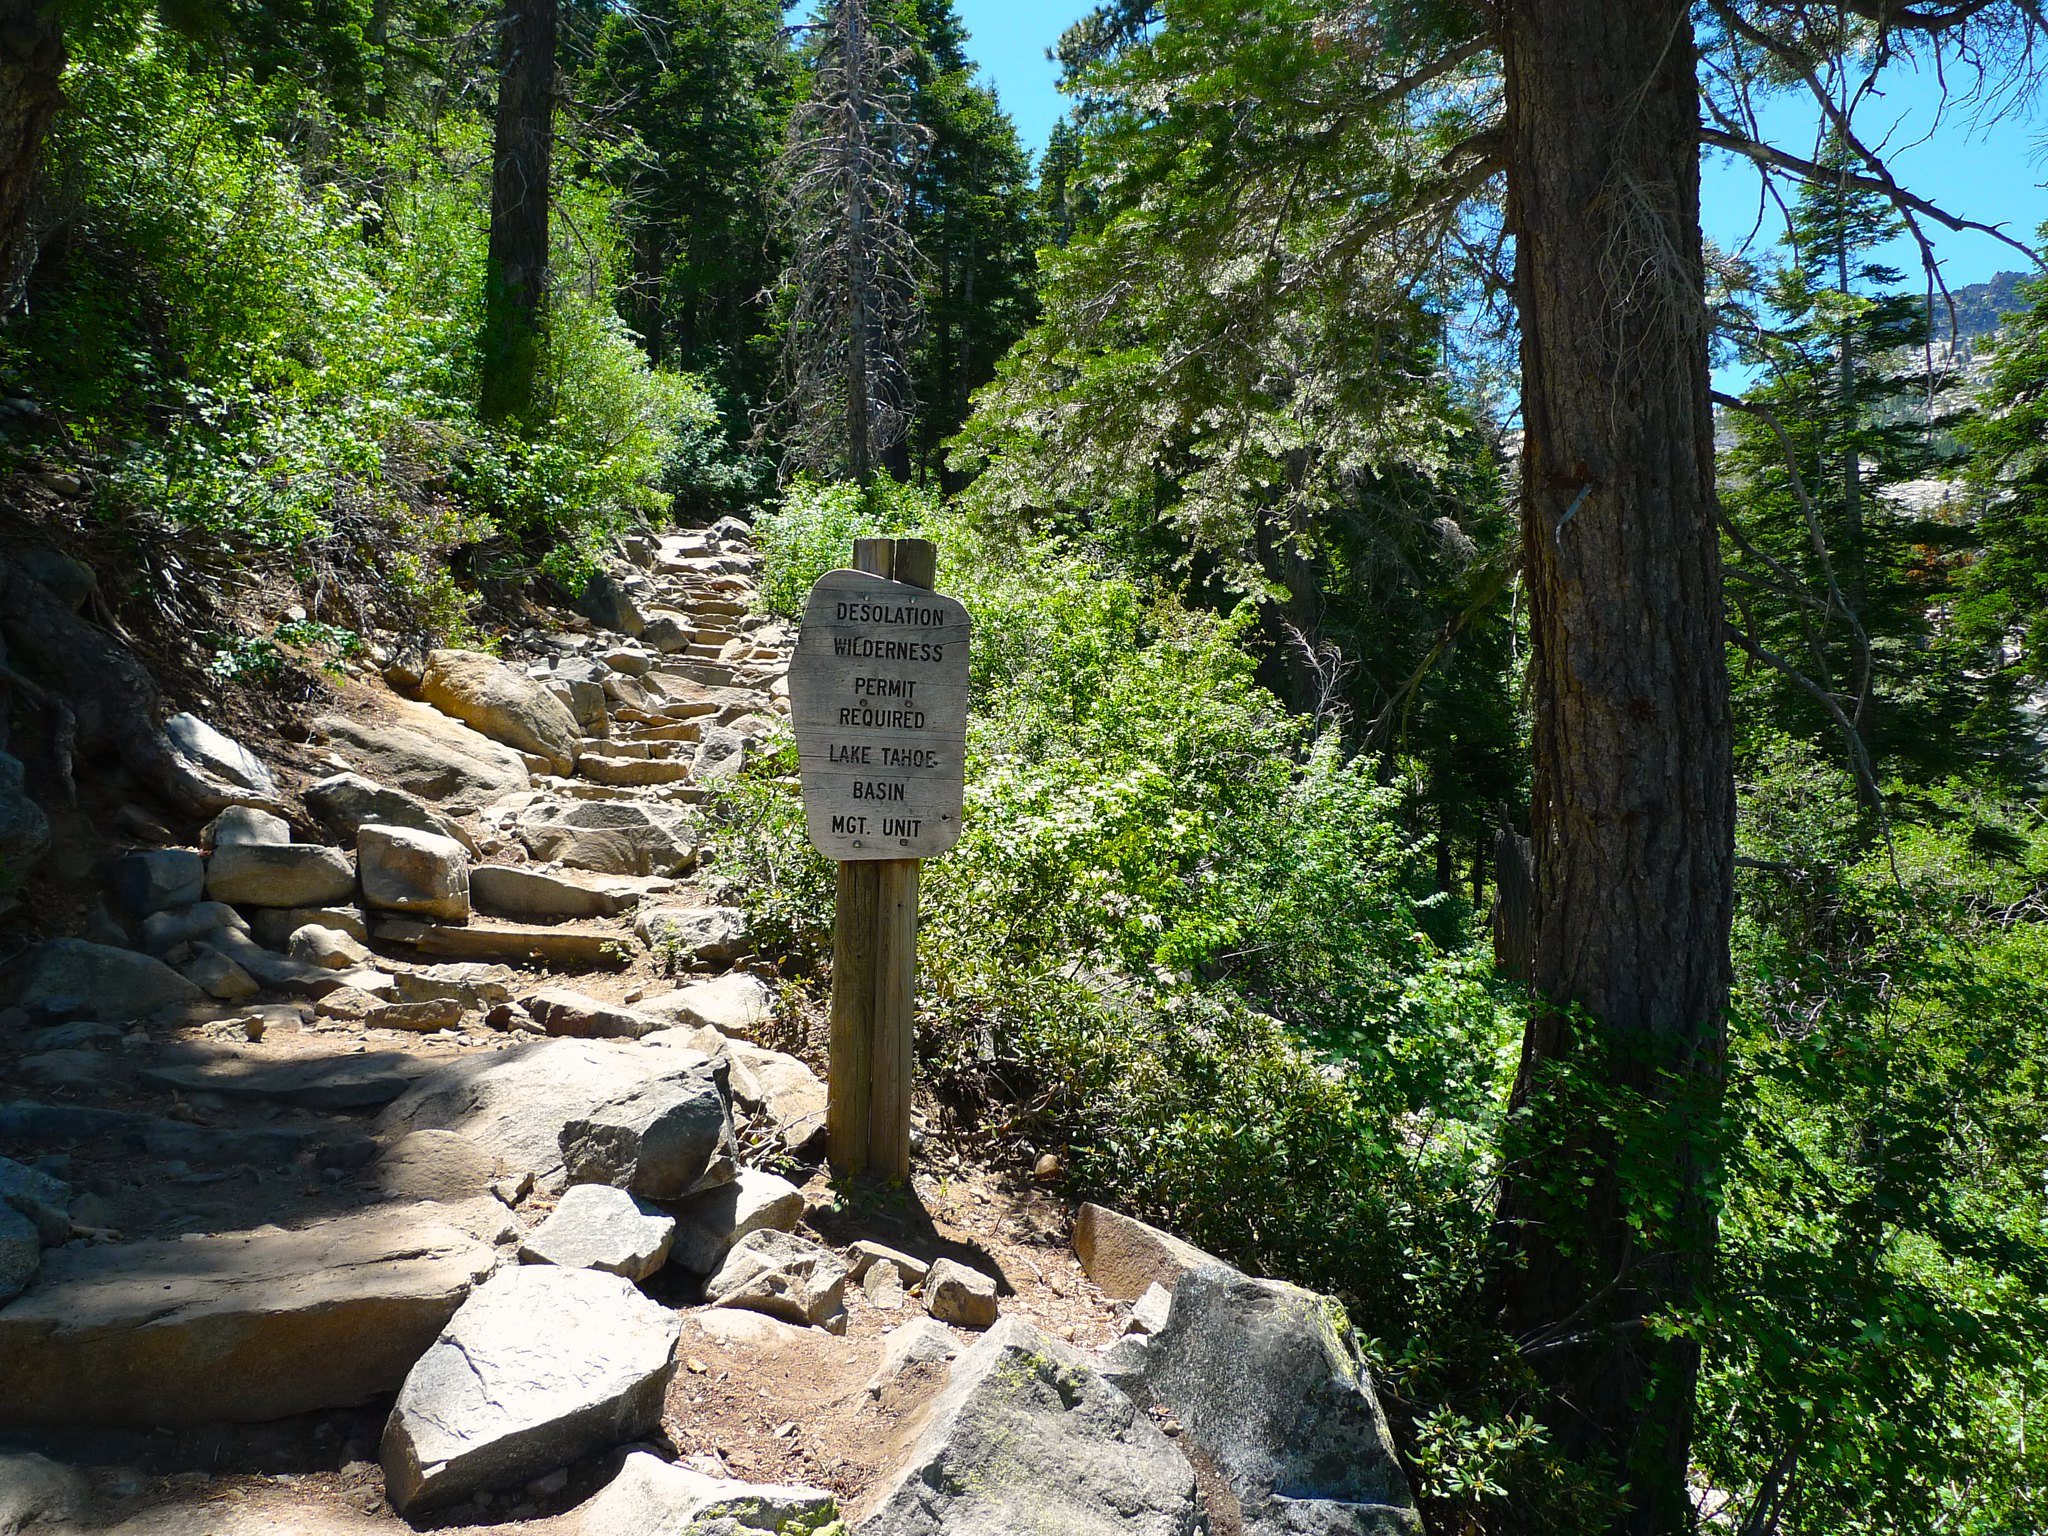 The wilderness boundary on my way out. So many stairs on the way down from Eagle Lake!